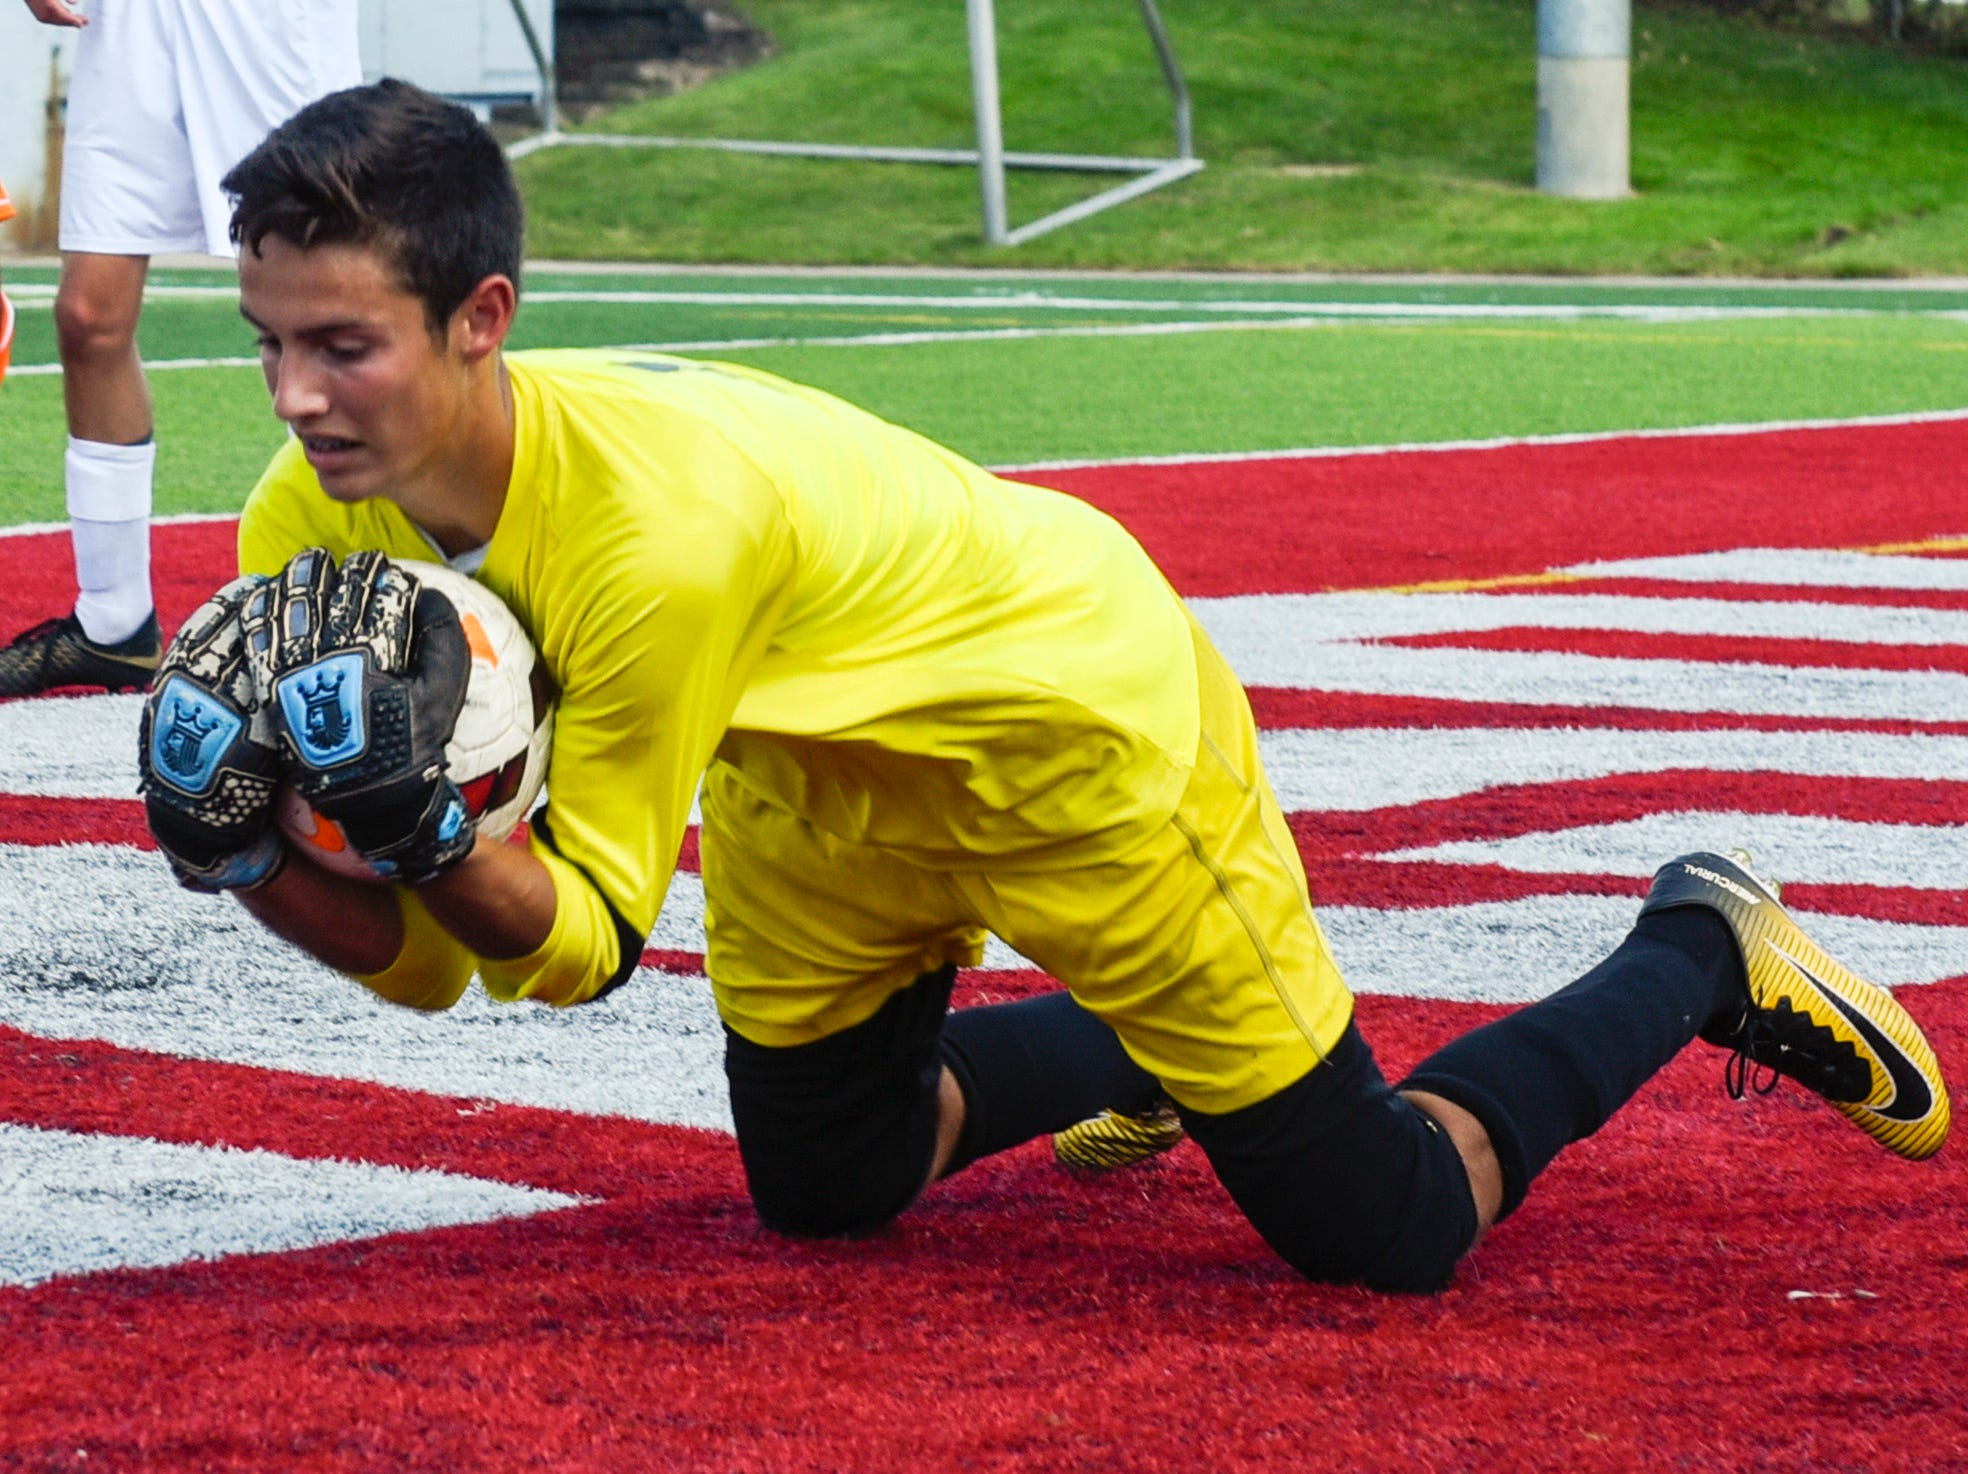 Sauk Rapids goalie Eli Rudnick makes a save against Tech during the first half Saturday, Sept. 15, at Husky Stadium.